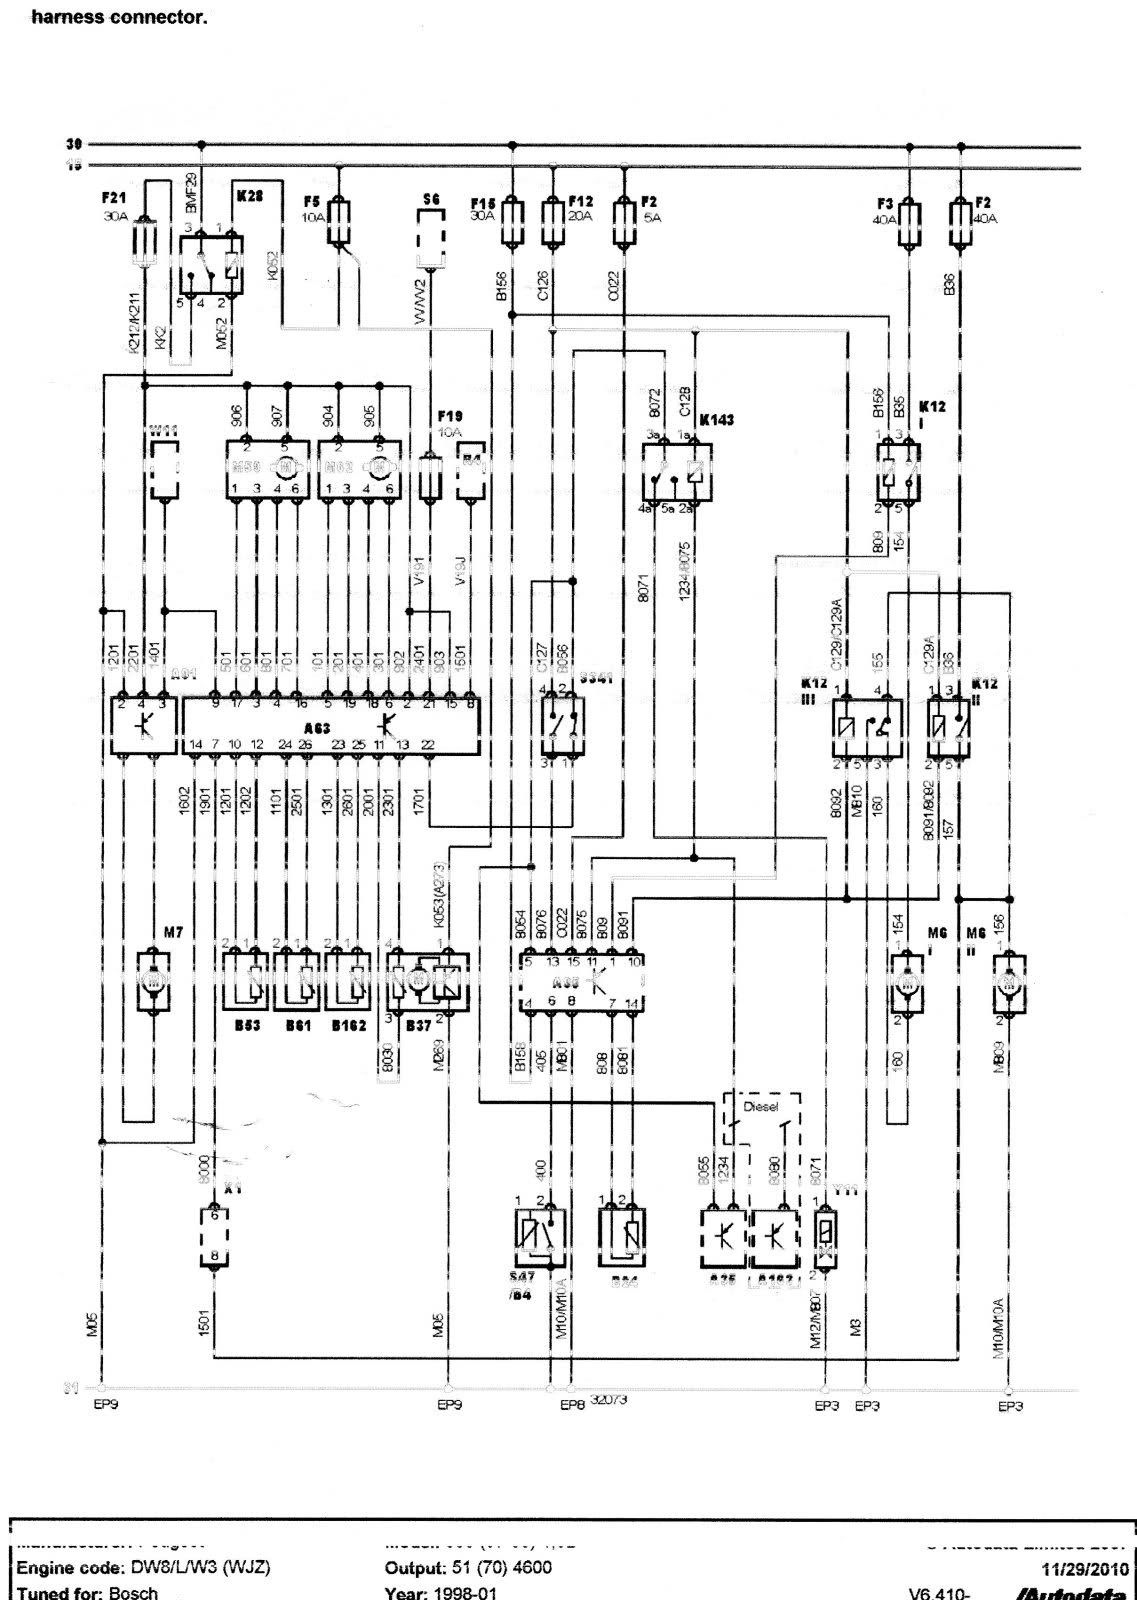 peugeot 406 wiring diagram free download peugeot 405 fuse box pdf wiring diagram schematics [ 1137 x 1600 Pixel ]